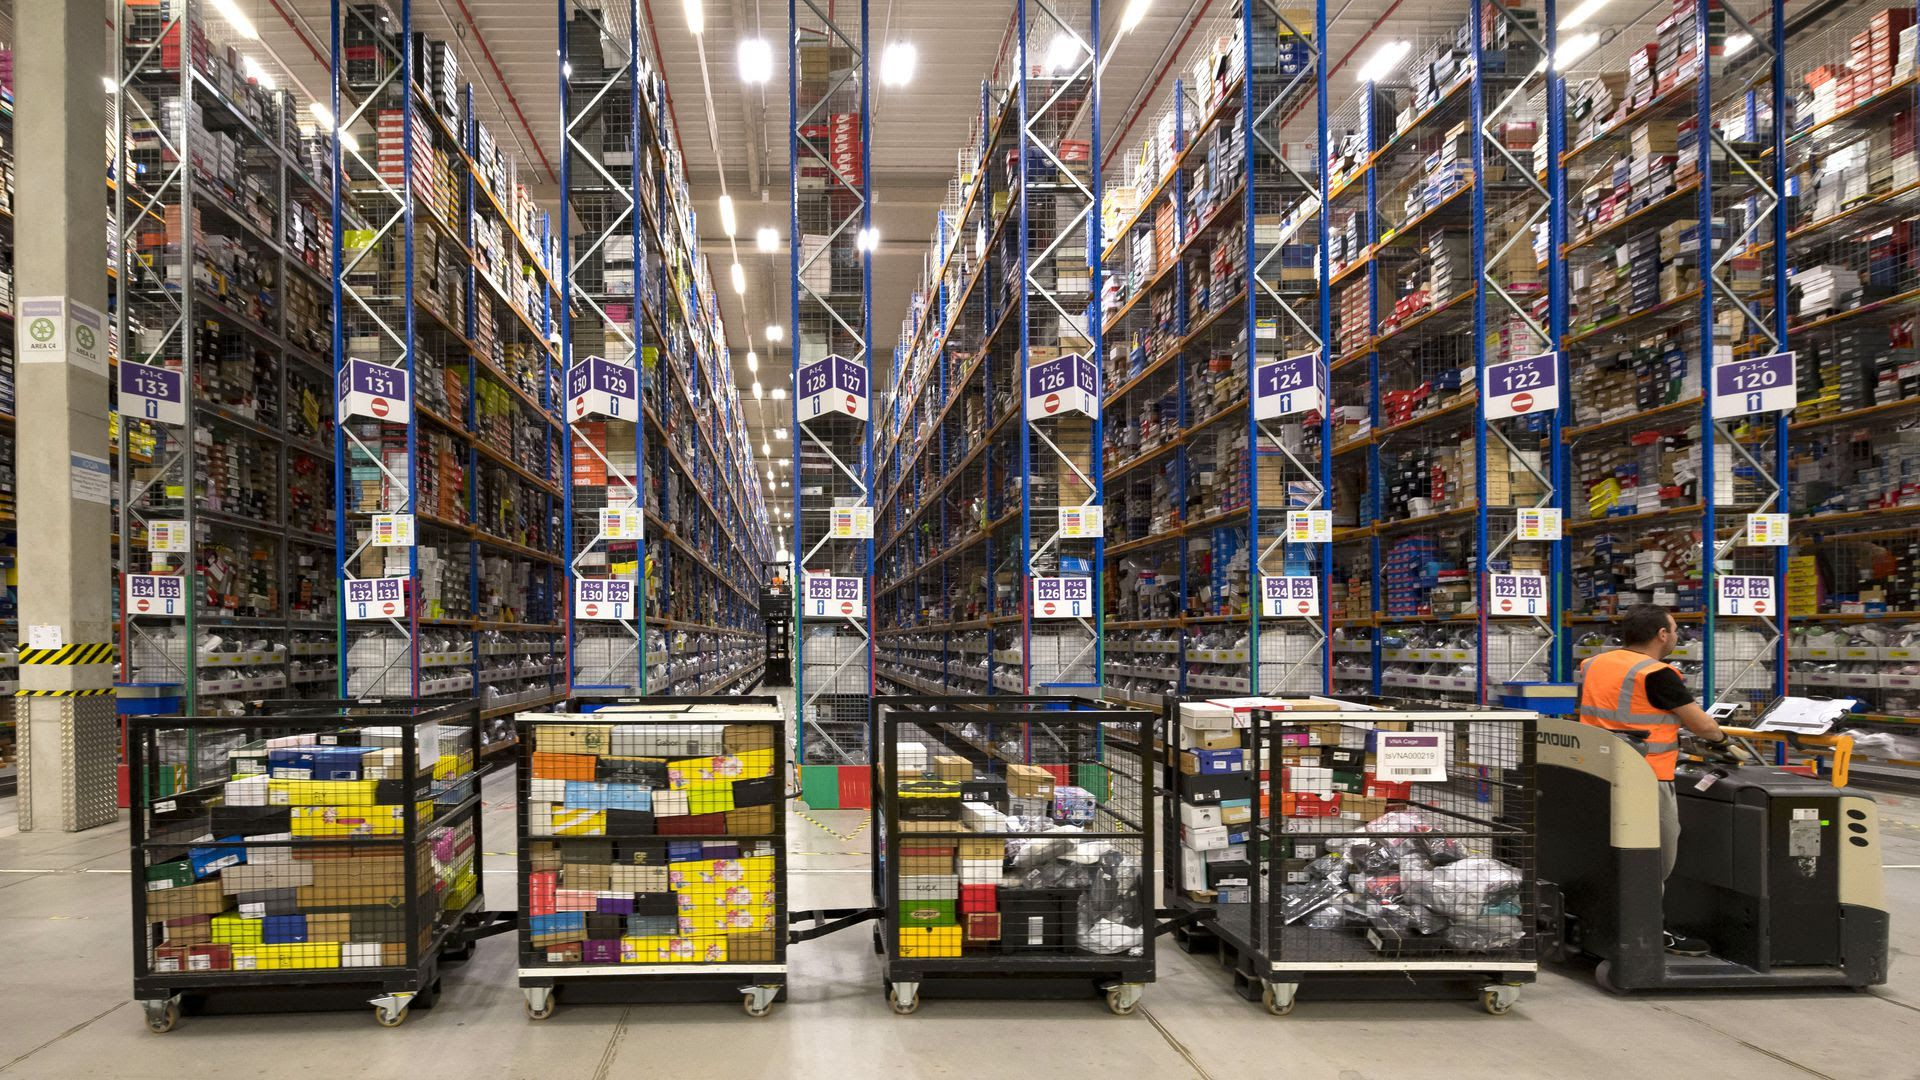 An Amazon fulfillment center, fully stocked for Black Friday. Photo: Matthew Horwood/Getty Images